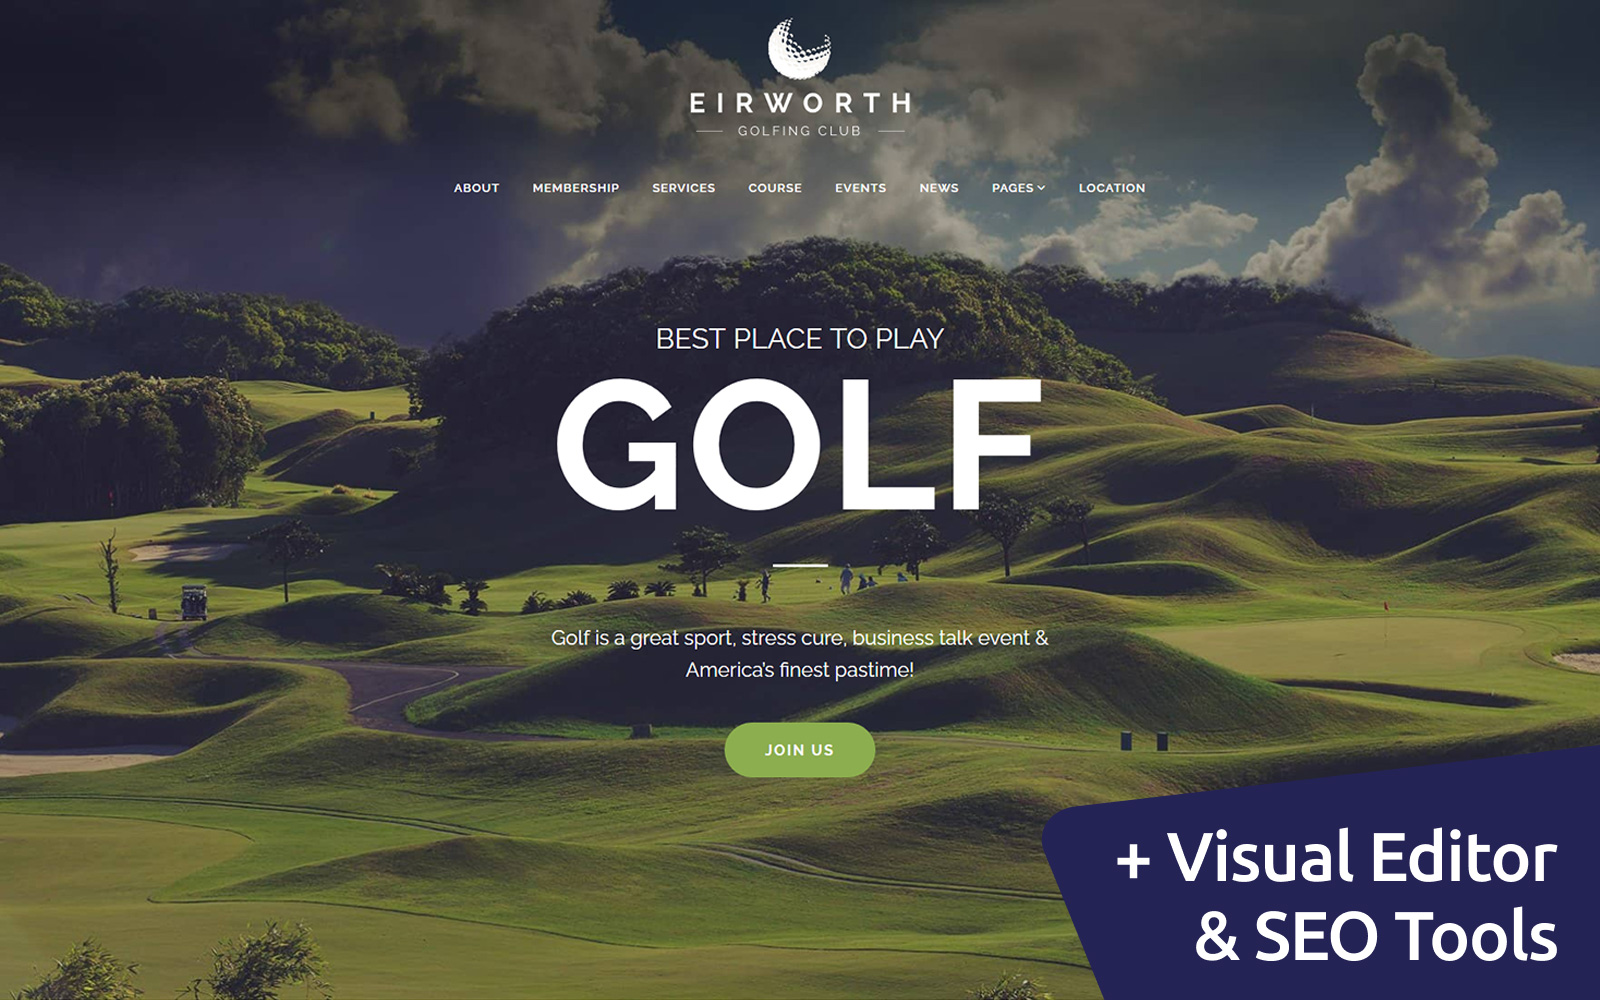 Eirworth - Golfing Club Moto CMS 3 Template